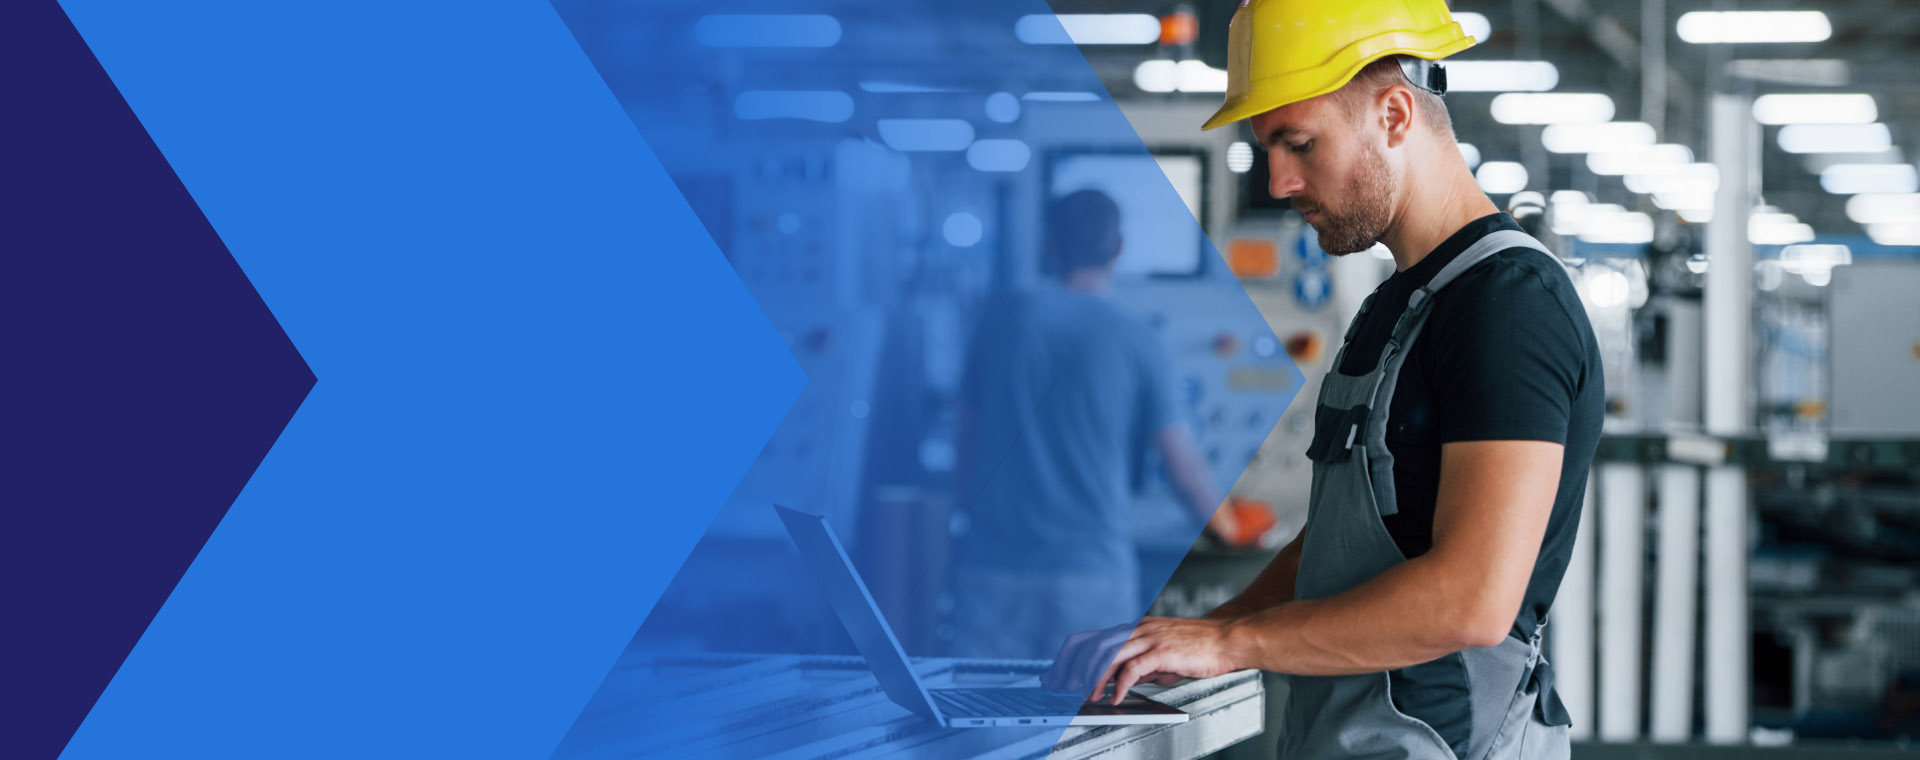 NeoMatrix | Industrial Automation and Enterprise Integration | Manufacturing Automation